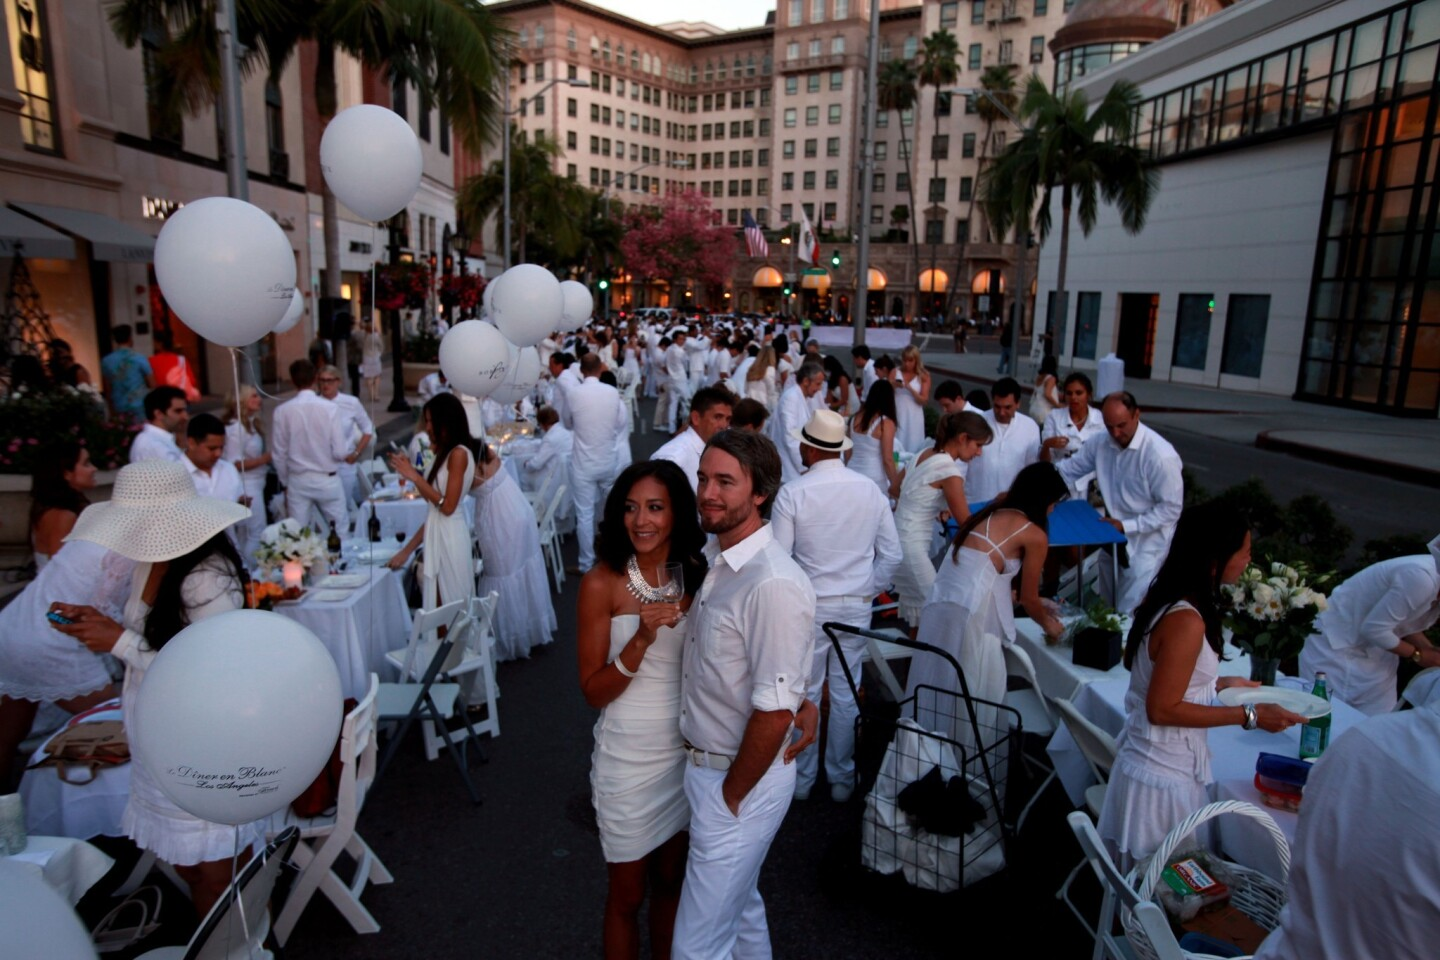 A 1,000-person dinner party took place Wednesday night on Rodeo Drive in Beverly Hills. Attendees brought their own food, chairs, tables and linens and dressed in white for the feast. The event was started by a French couple, and this is the first time it has taken place in Southern California.